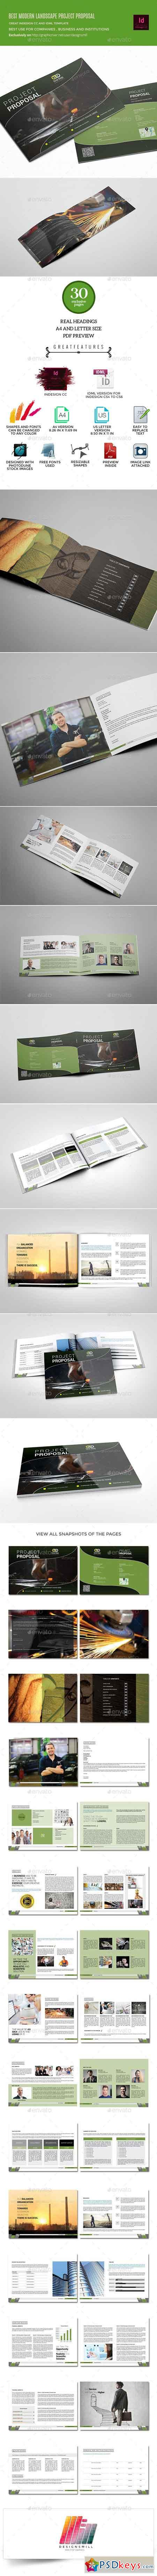 Three Rings Project Proposal Template 10196937